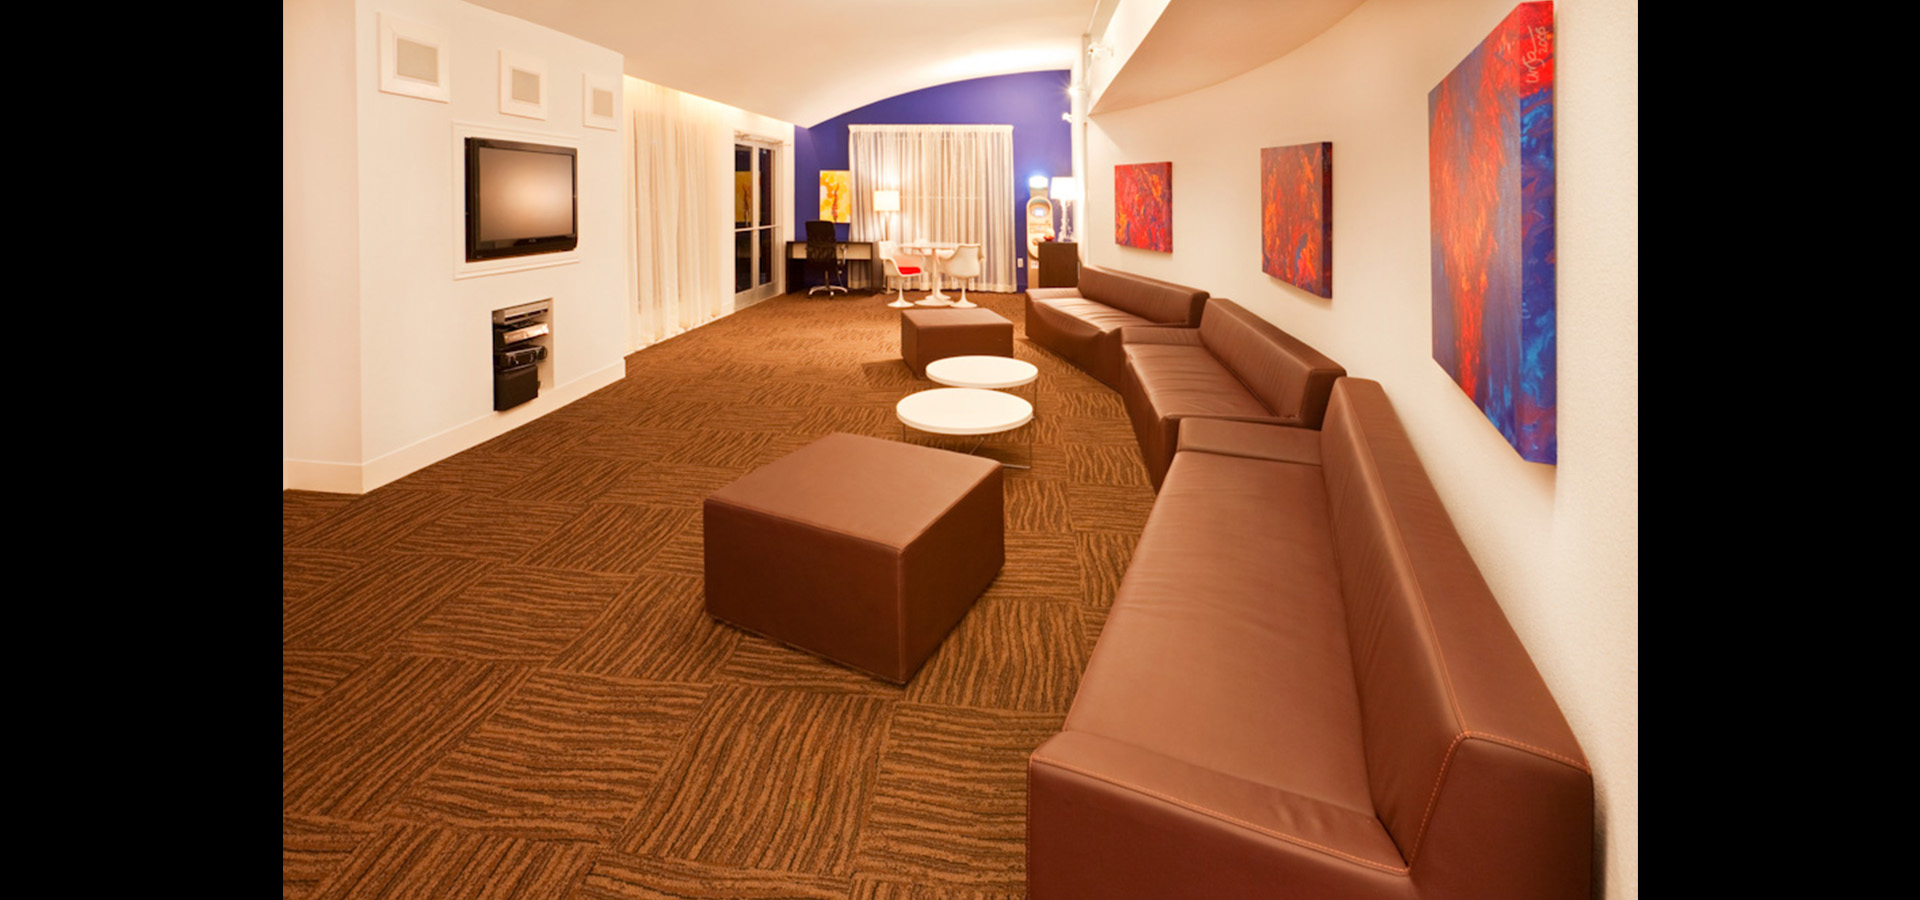 Candlewood Suites DFW South_05